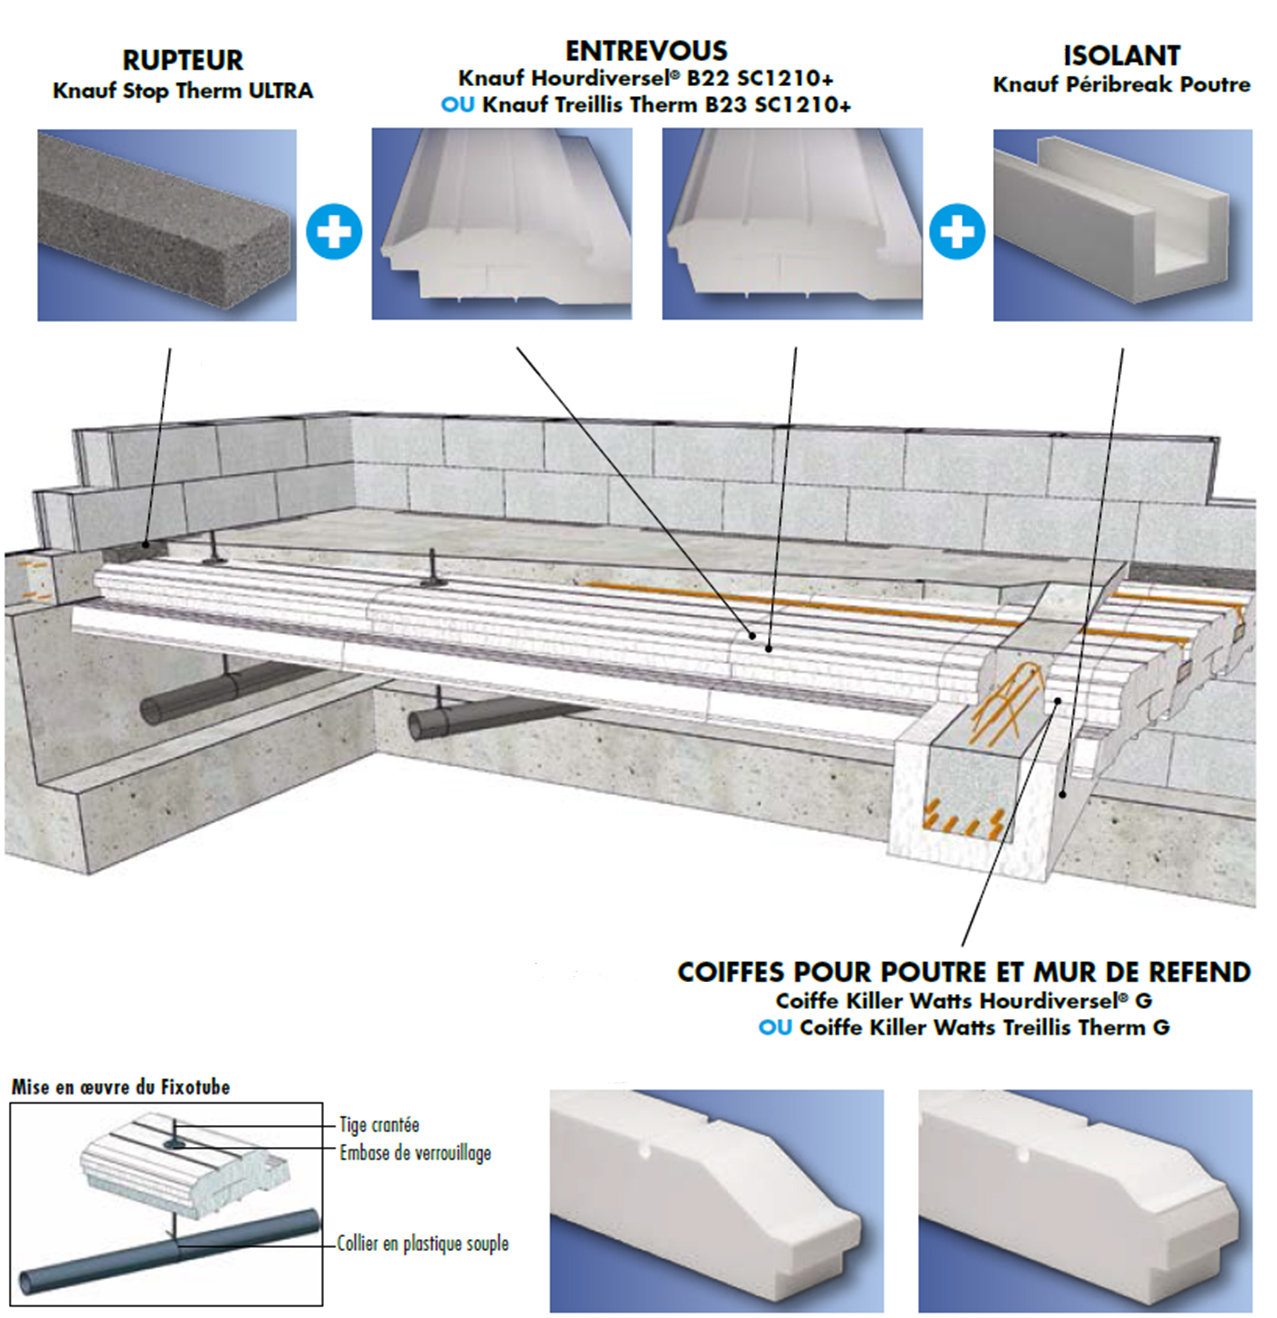 SOLUTION KILLER WATTS BY KNAUF AVEC POUTRE DE REFEND